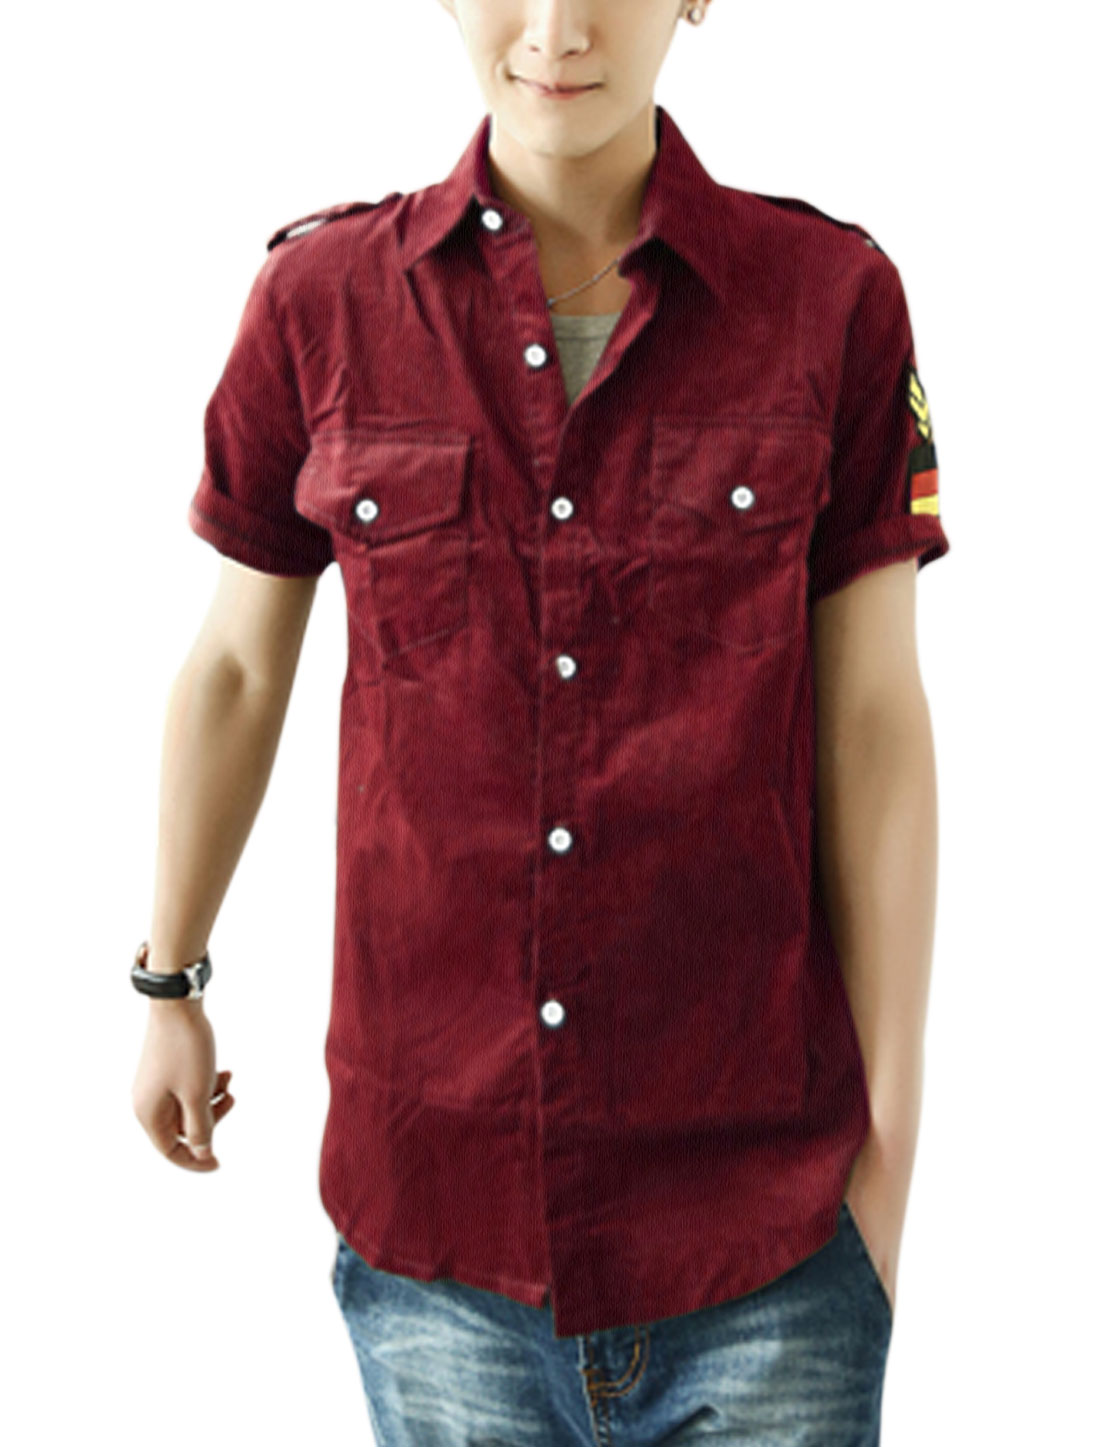 Men Leisure Short Sleeve Button-Front Epaulette Decor Shirt Burgundy M